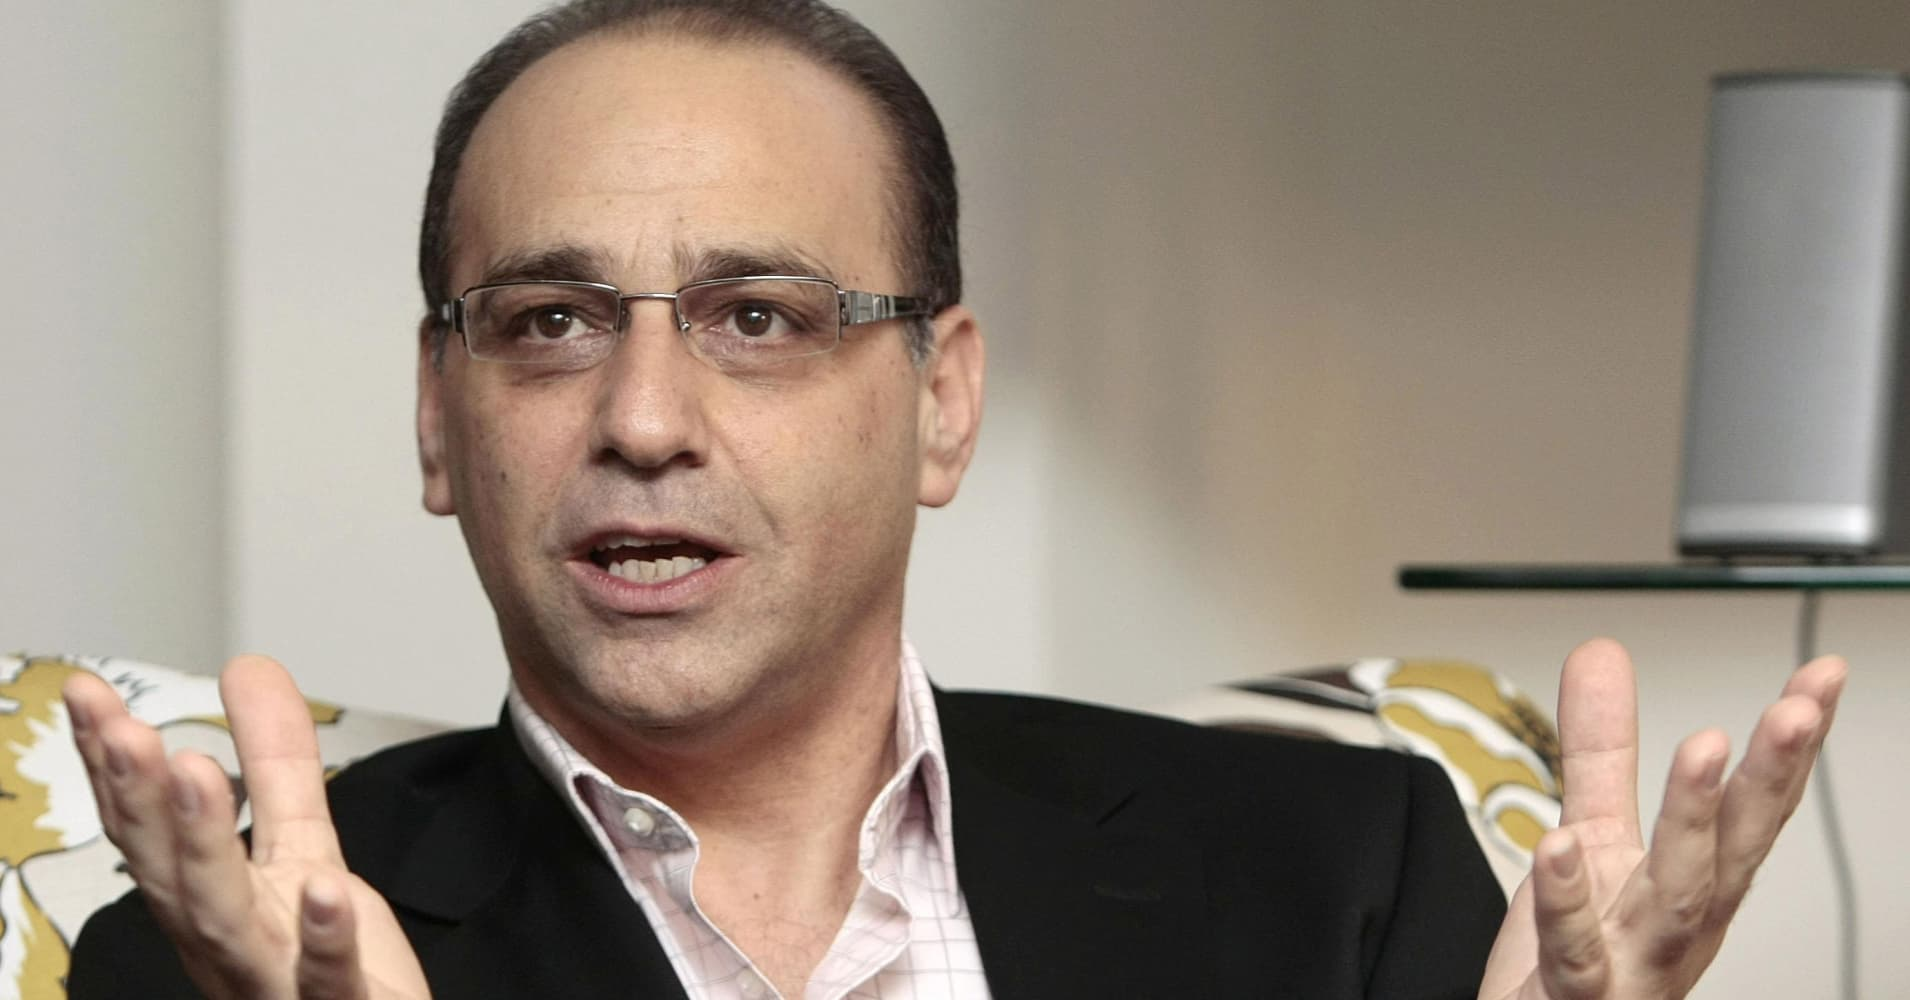 Dragons Den star Theo Paphitis speaks at the launch of the Smarta website in central London.